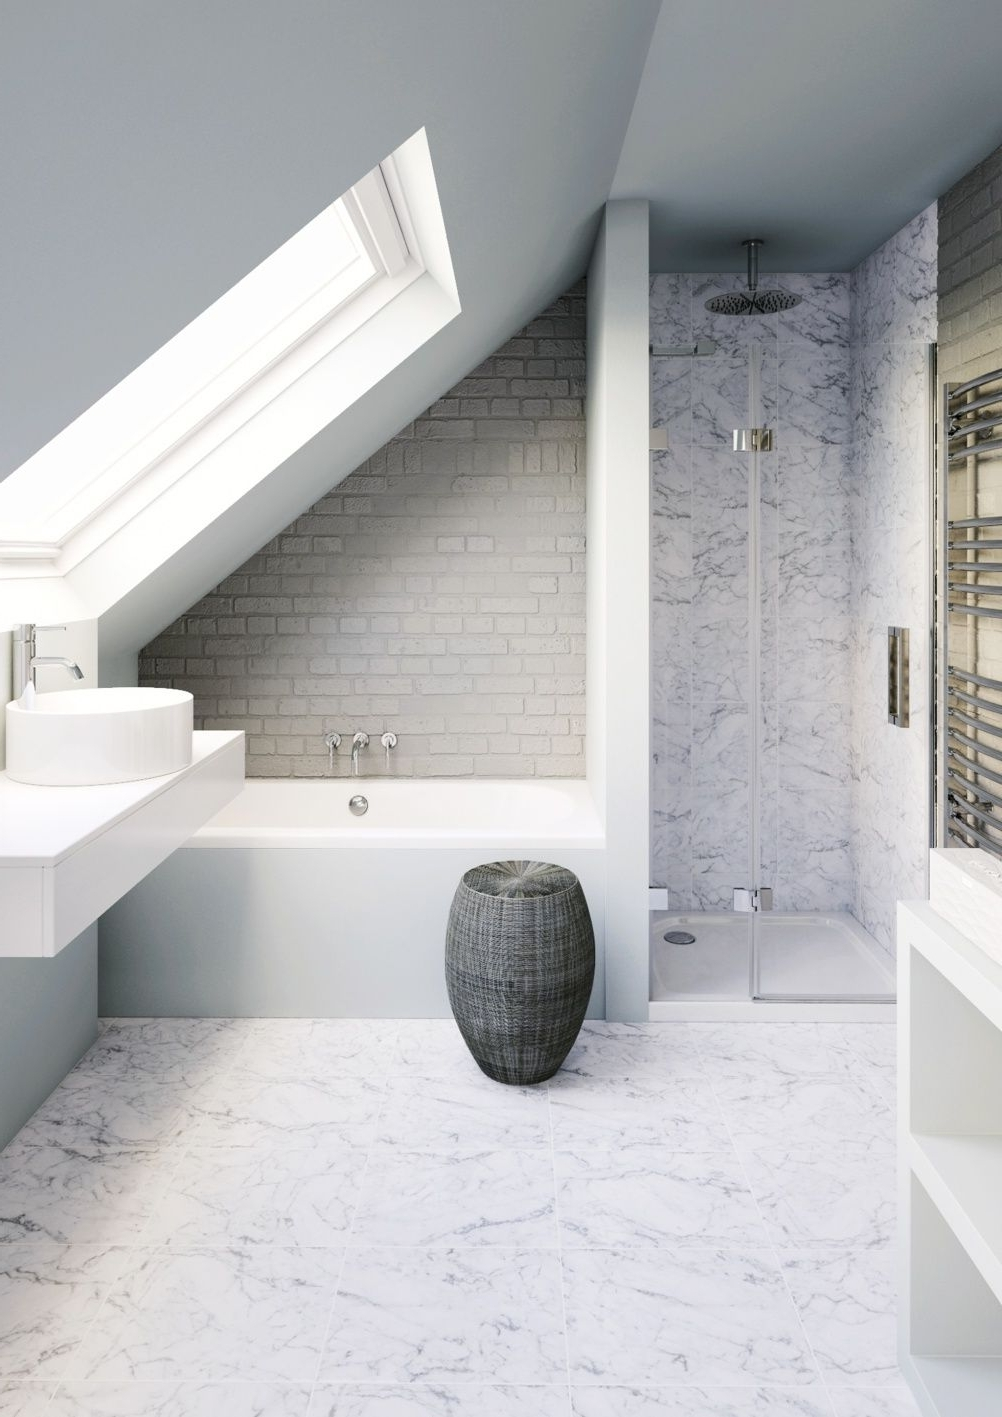 Loft Conversion Bathroom With Fittings From Bathrooms Small Bathroom Loft Conversion